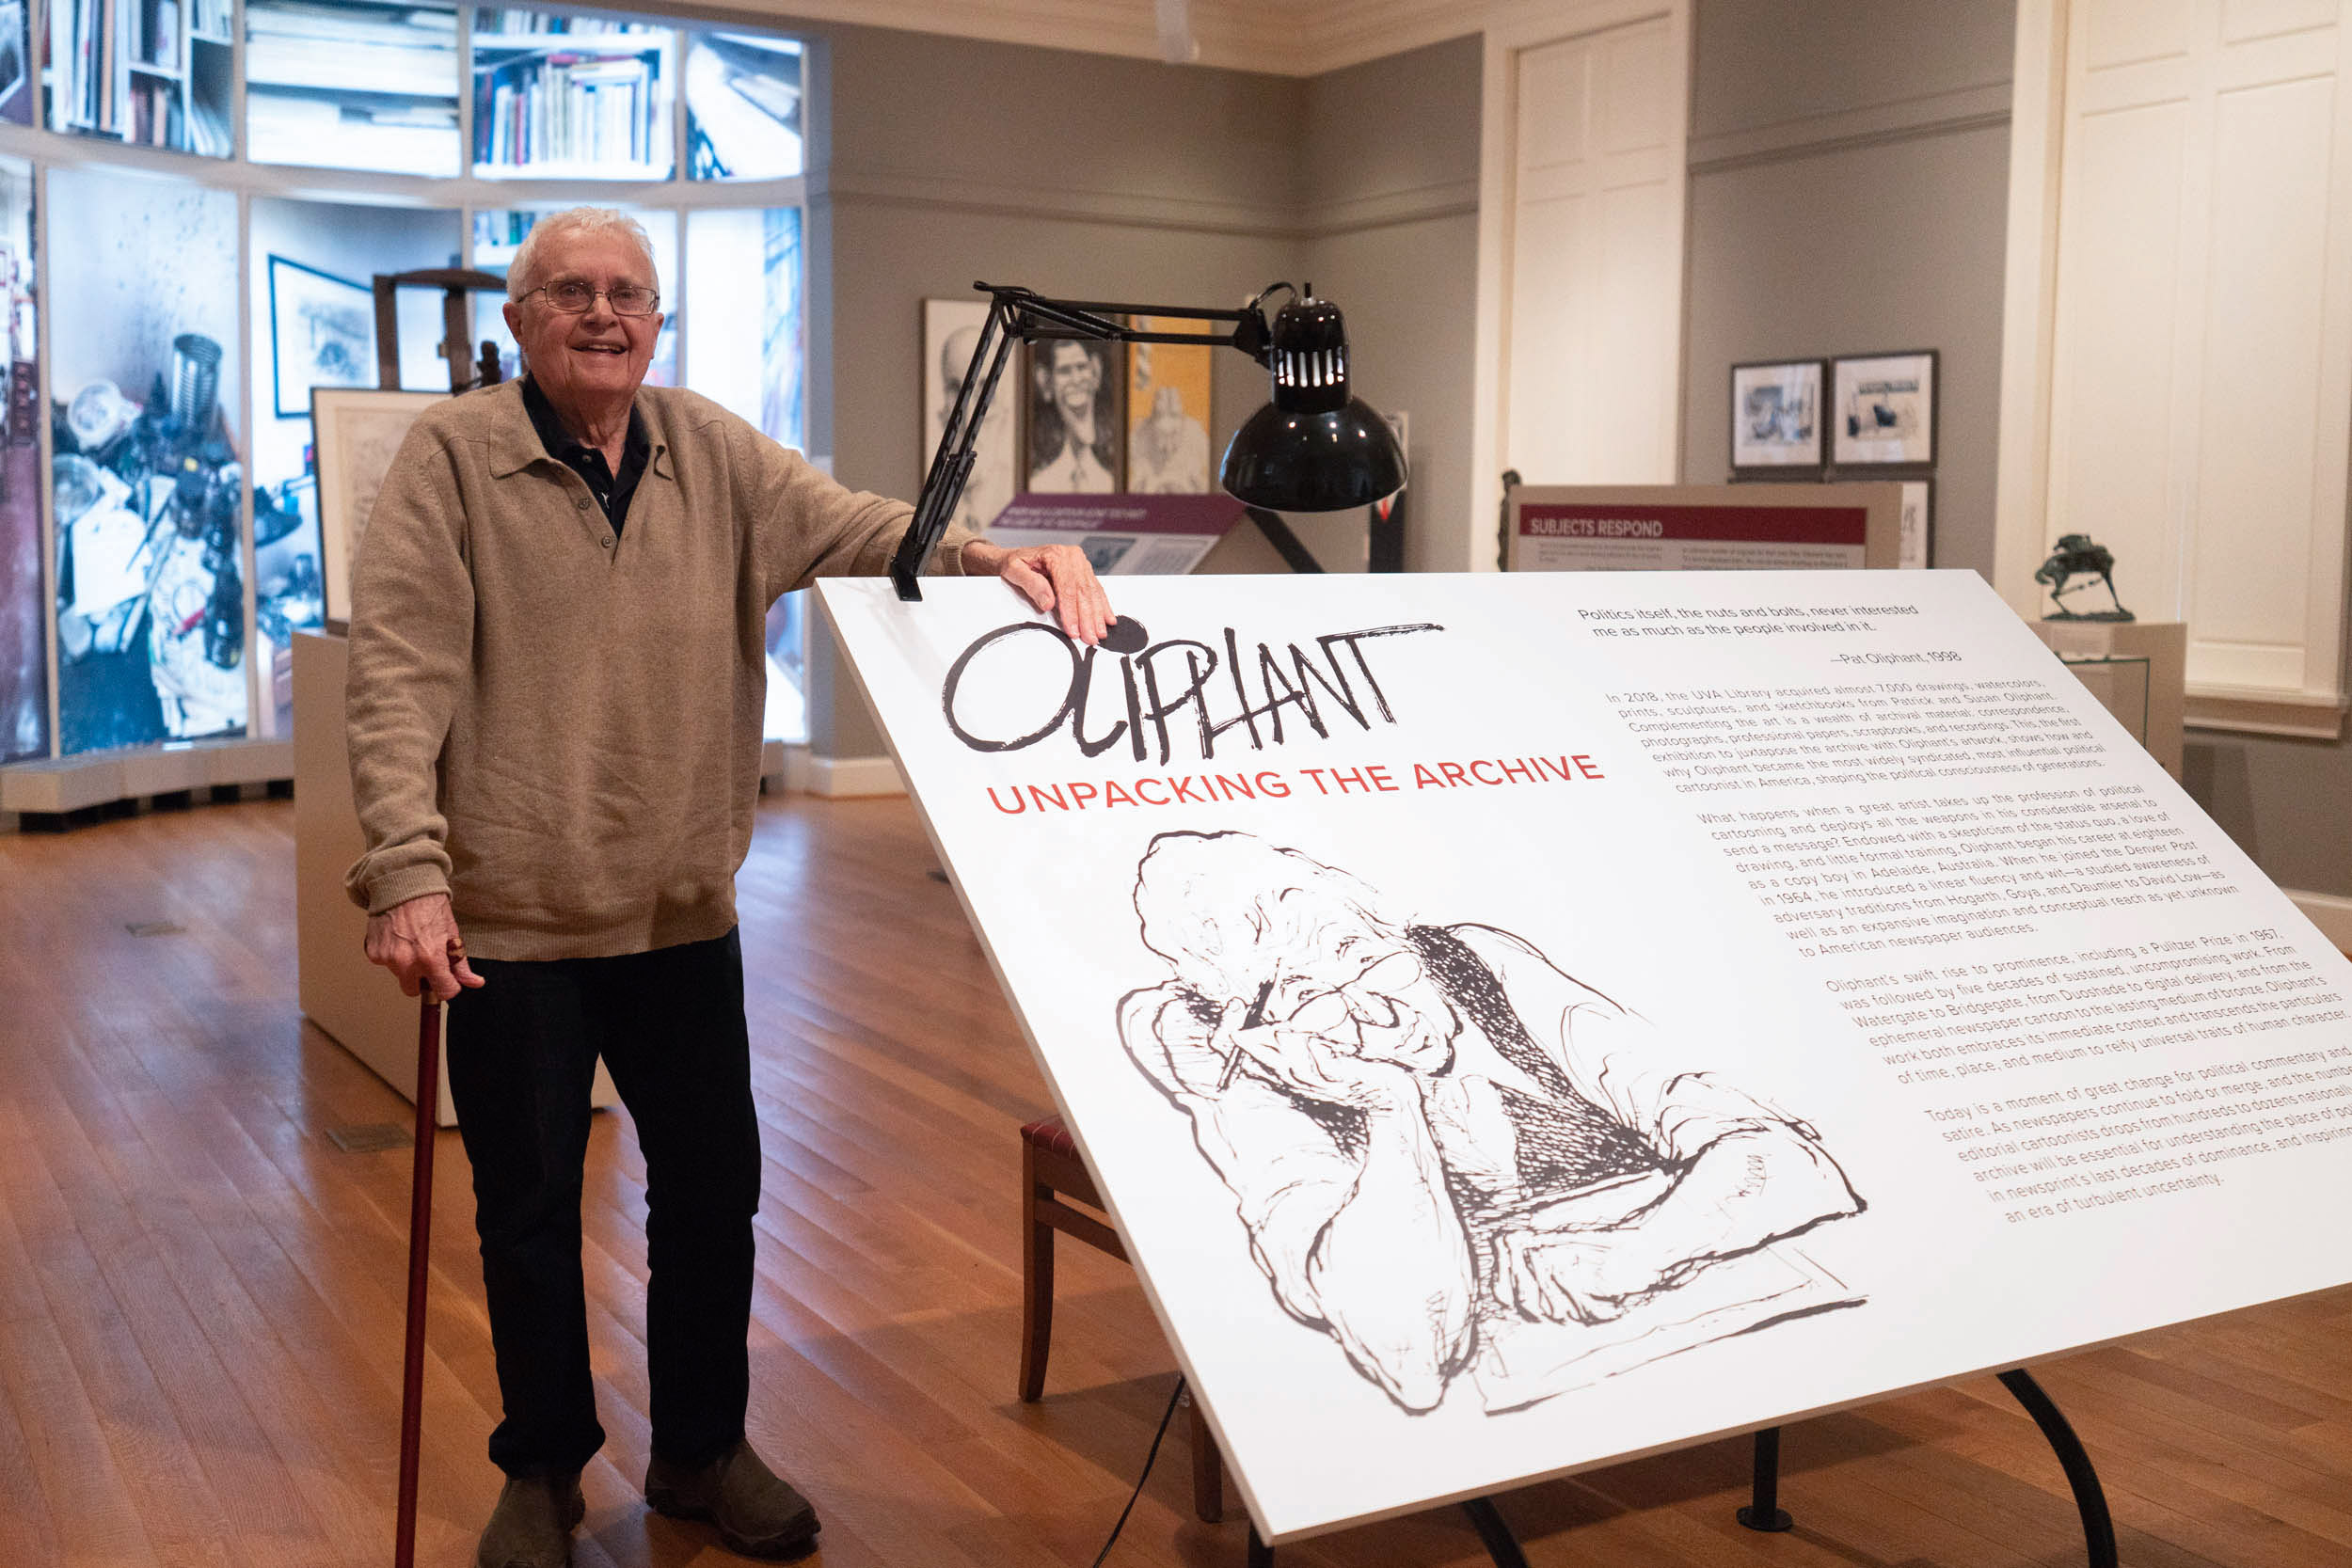 Oliphant emigrated from Australia to the U.S. in 1964 to enjoy the ideals of free speech in the newspaper industry and worked here for about 50 years.